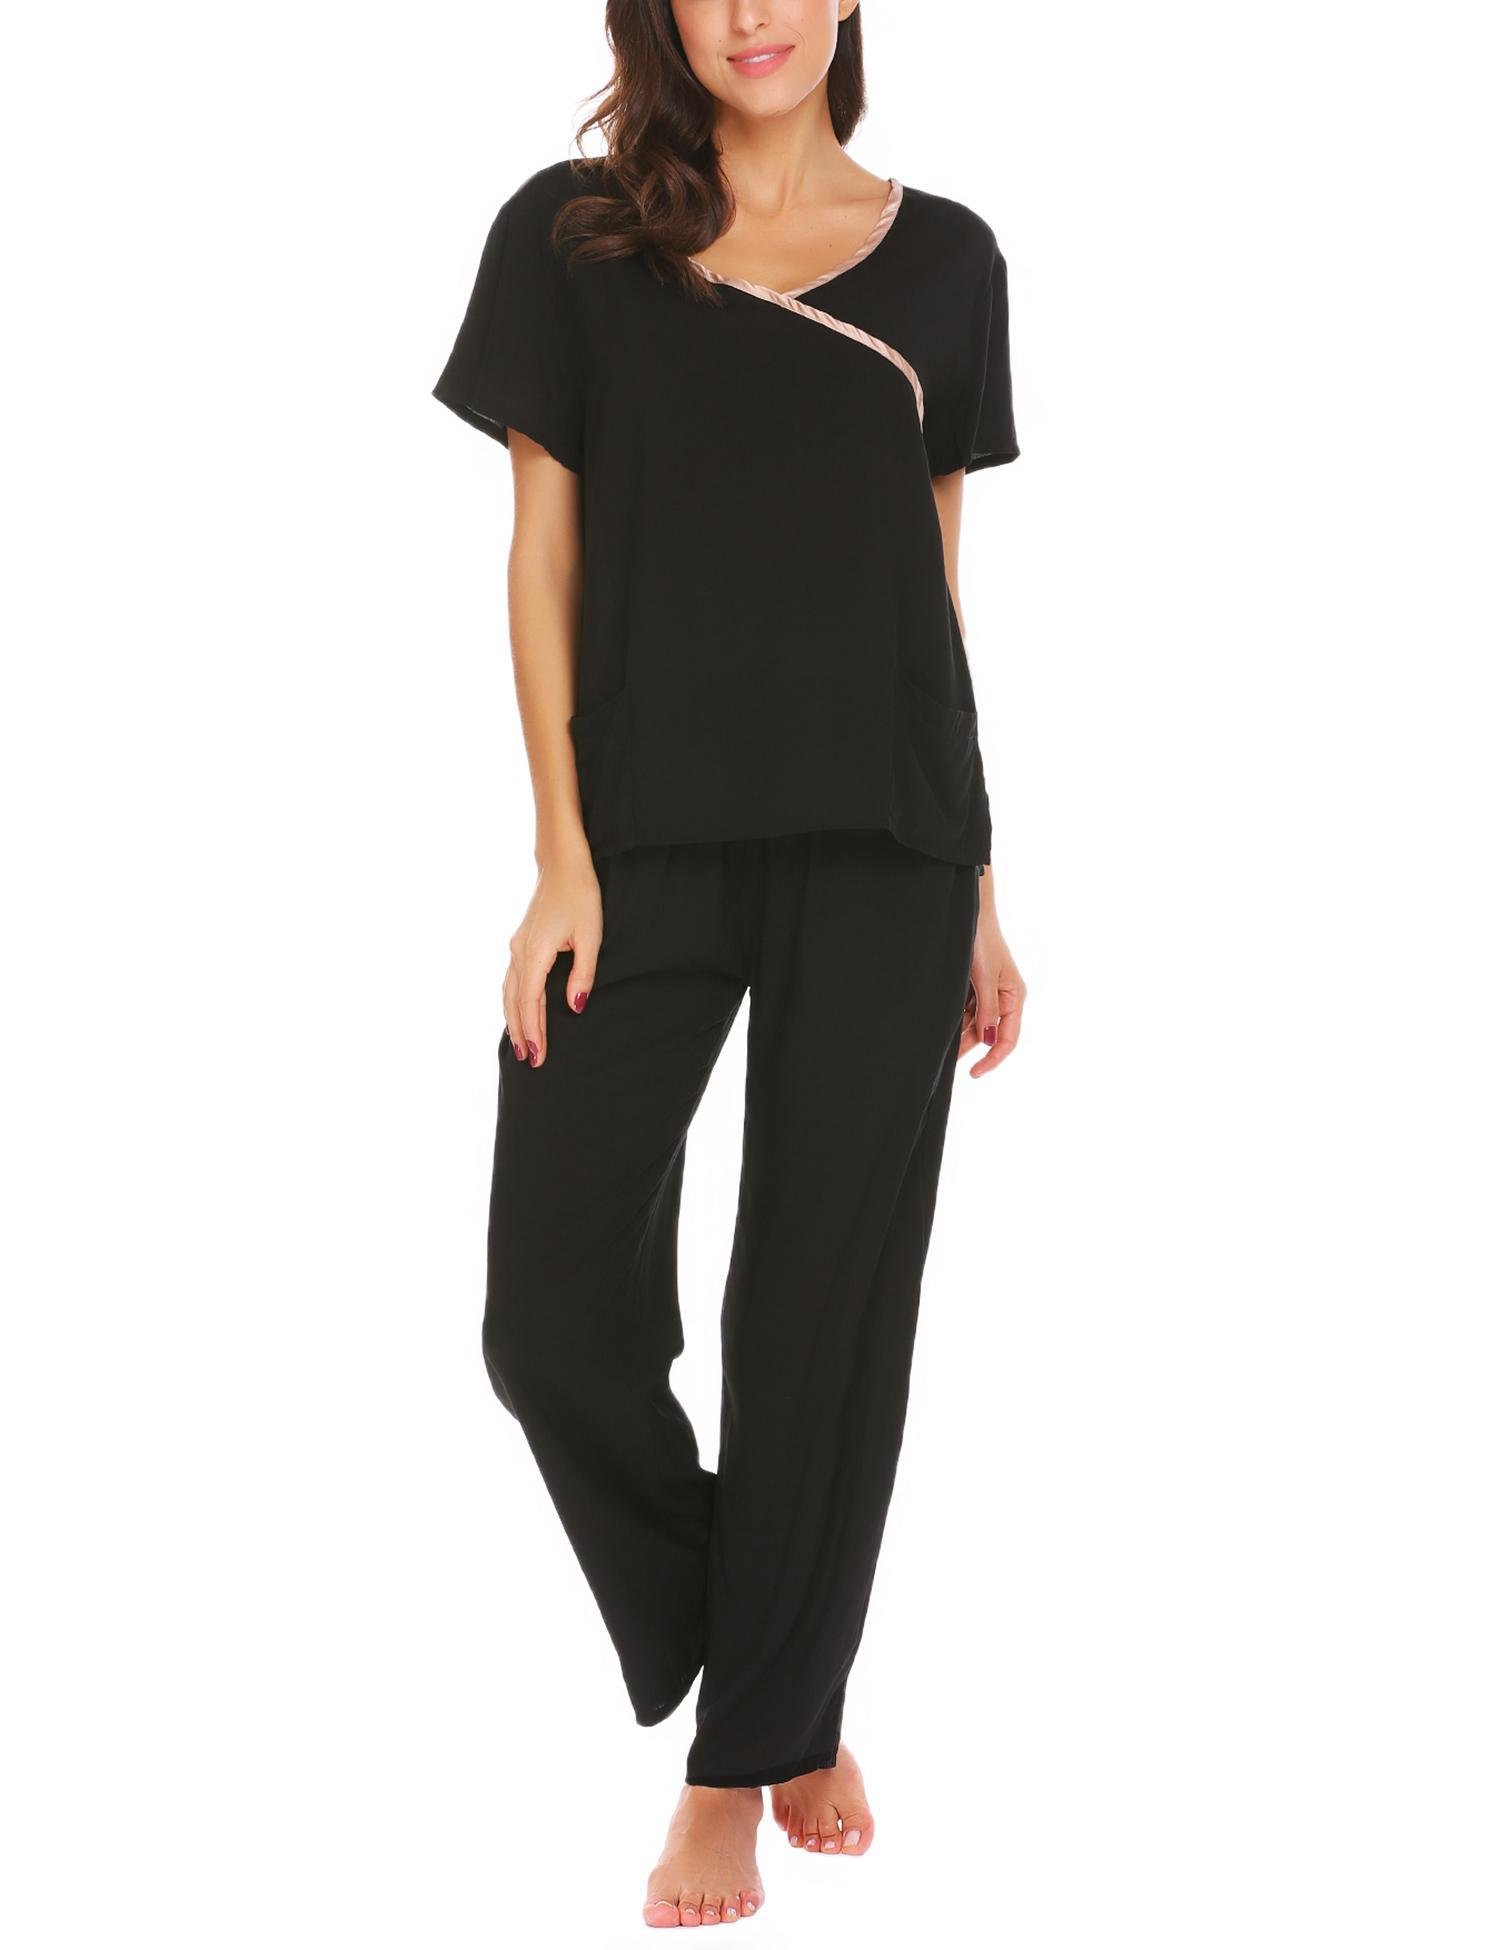 Aimado Women's Maternity Nightgowns Comfy Sleepwear Long Sleeve Pajama (Black, Meidum)